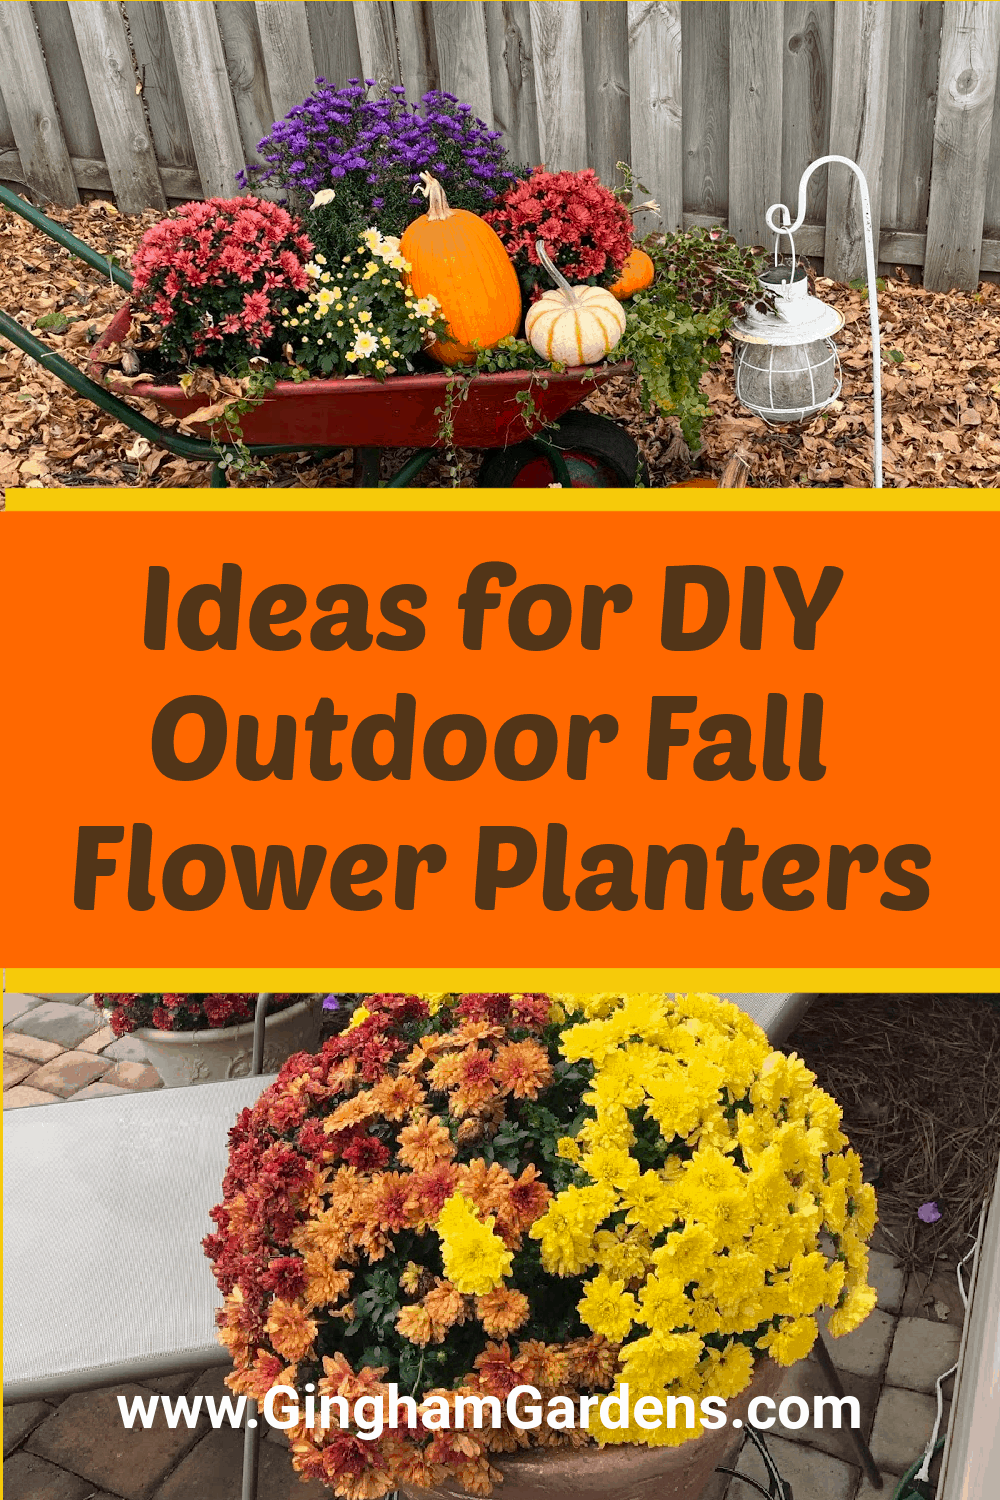 Images of fall gardens with text overlay - Ideas for DIY Outdoor Fall Flower Planters